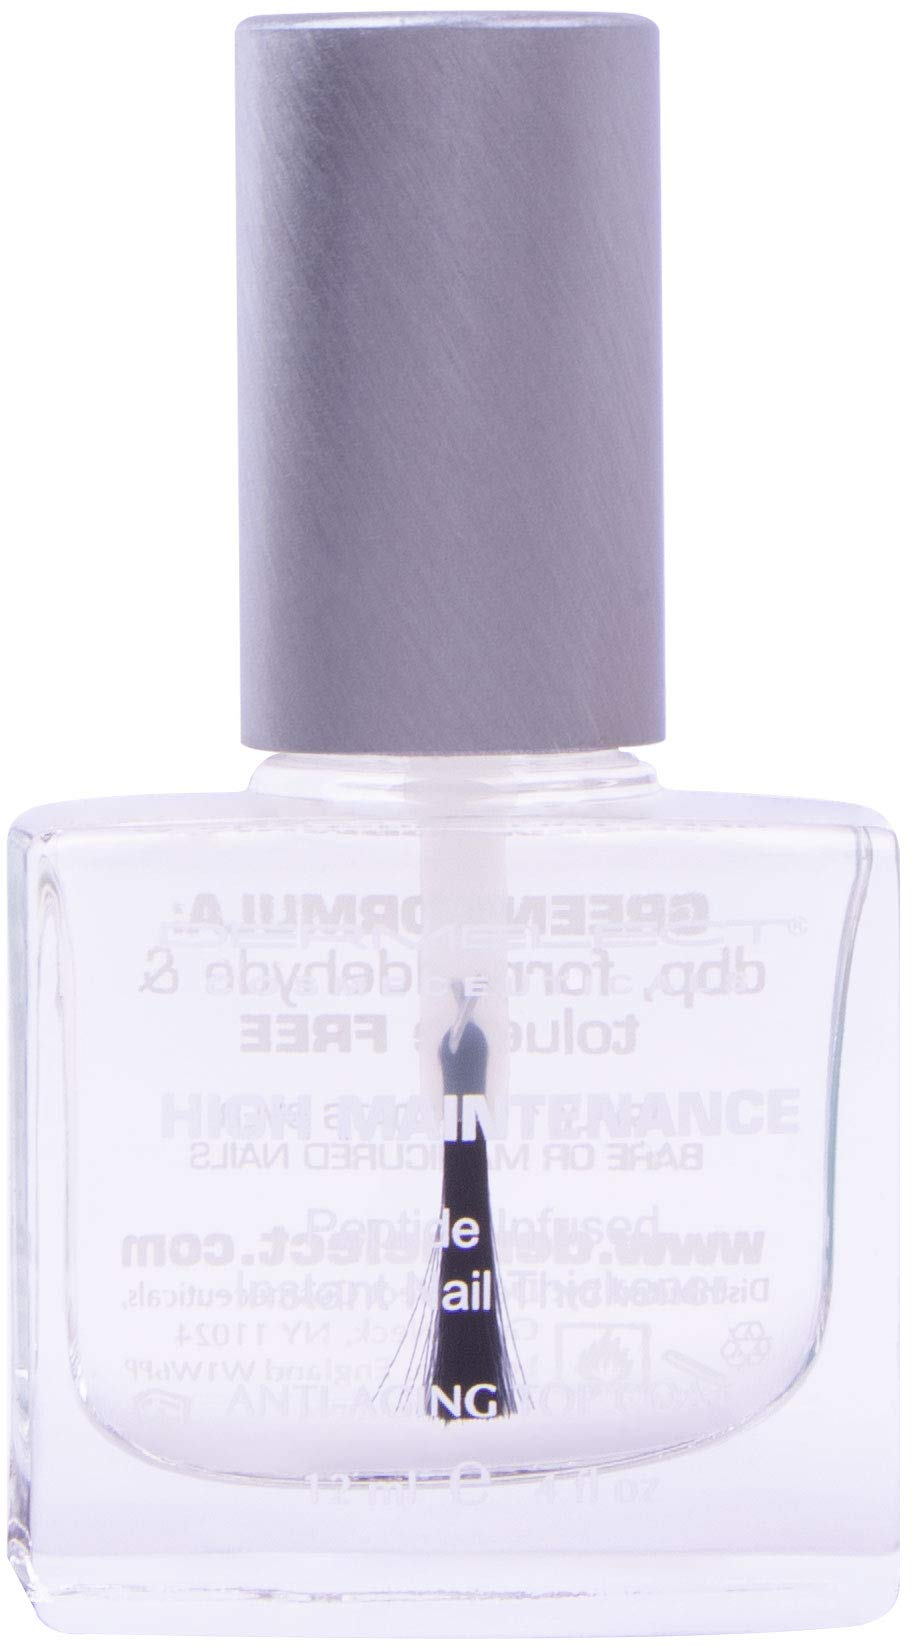 Dermelect Cosmeceuticals High-Maintenance Instant Nail Thickener - 0.4 oz. by Dermelect